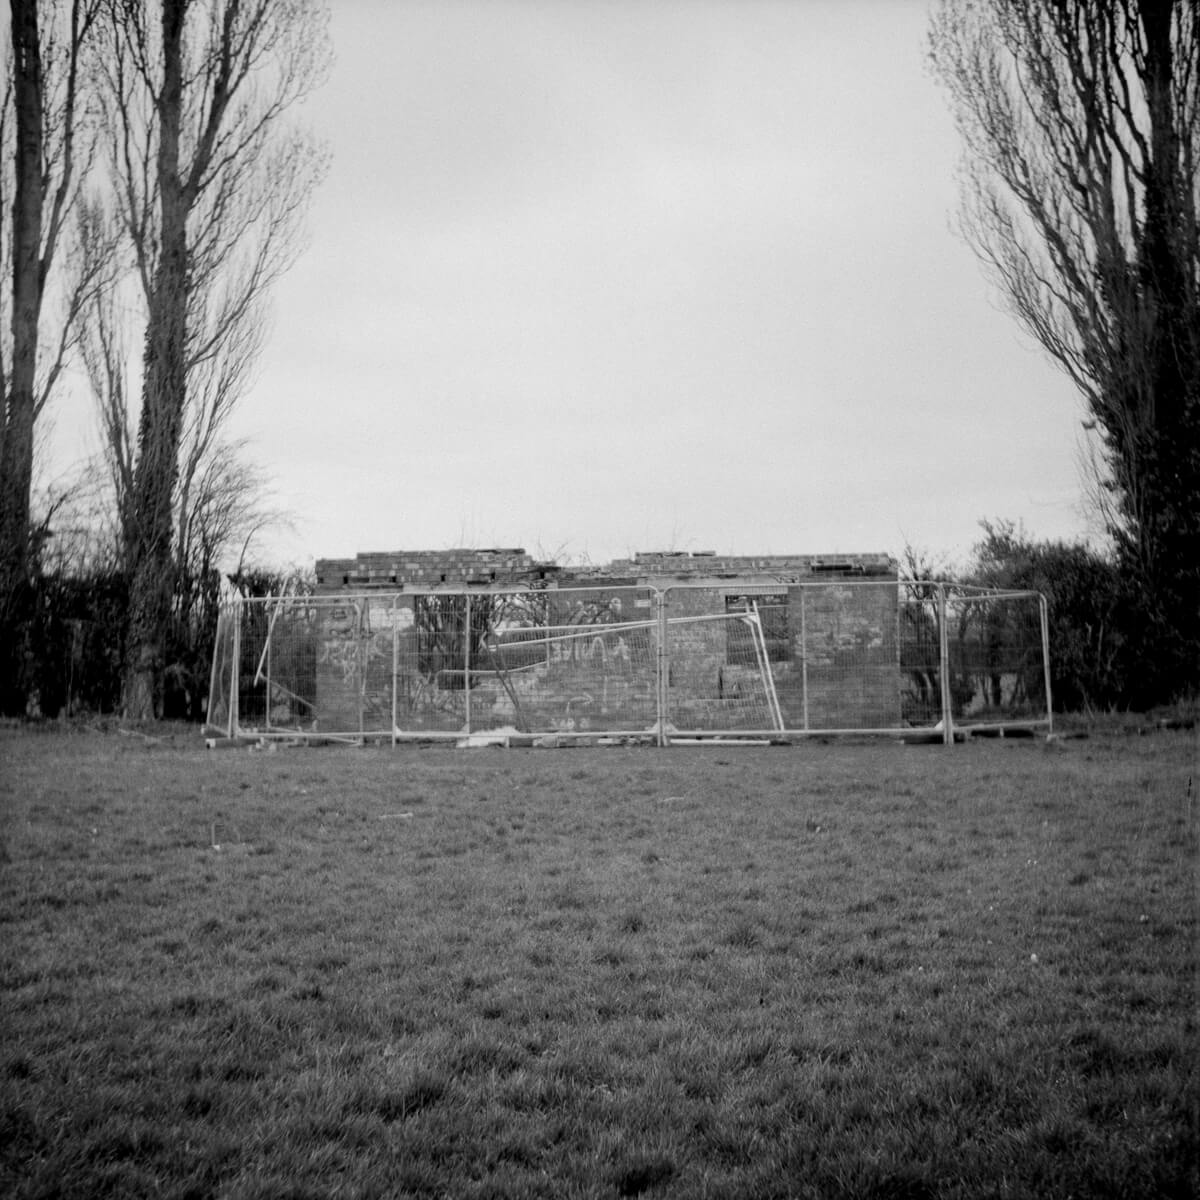 5 Frames... Of socially distanced life on ILFORD FP4 PLUS (EI 125 / 120 format / Weltaflex TLR) - by Paul Lewis